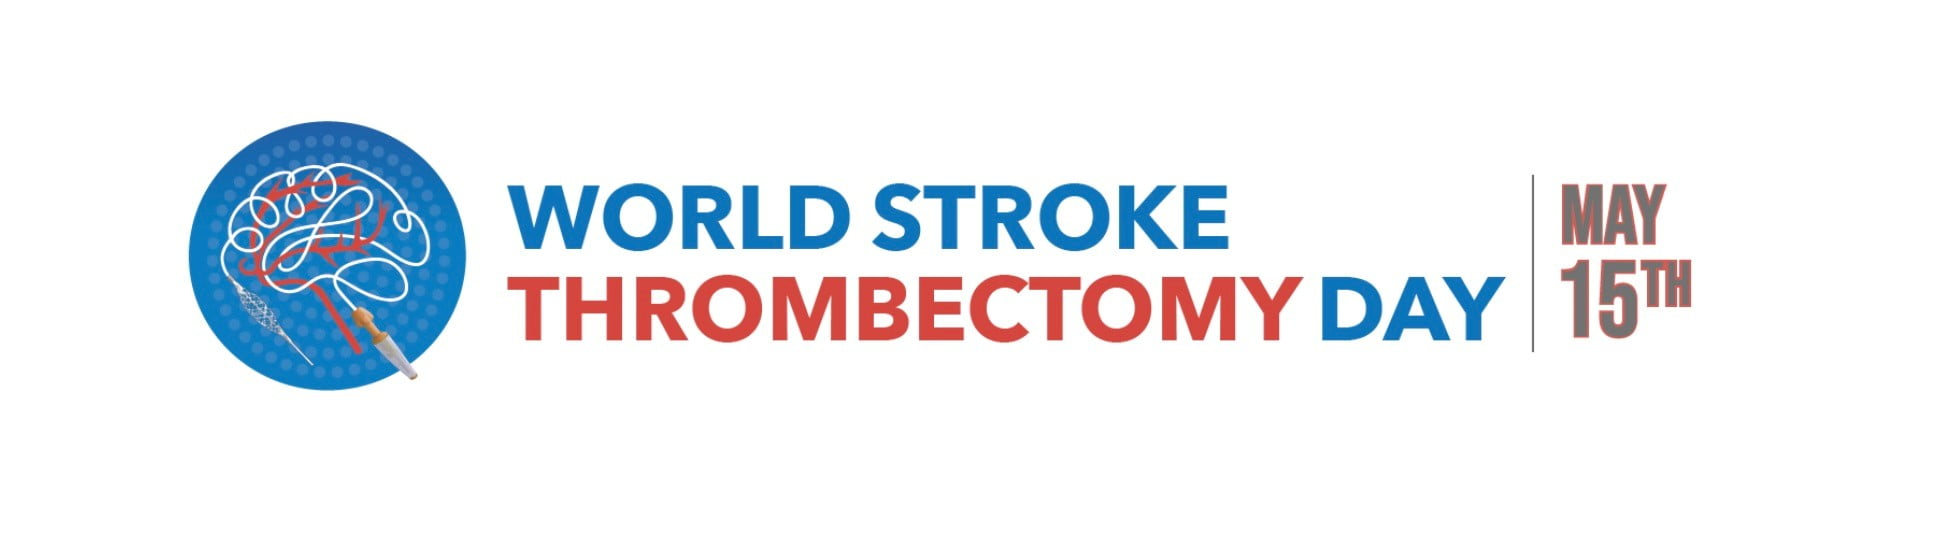 Thrombectomy Stroke Treatment Reversing Paralysis and Preventing Death Gets Its Global Day